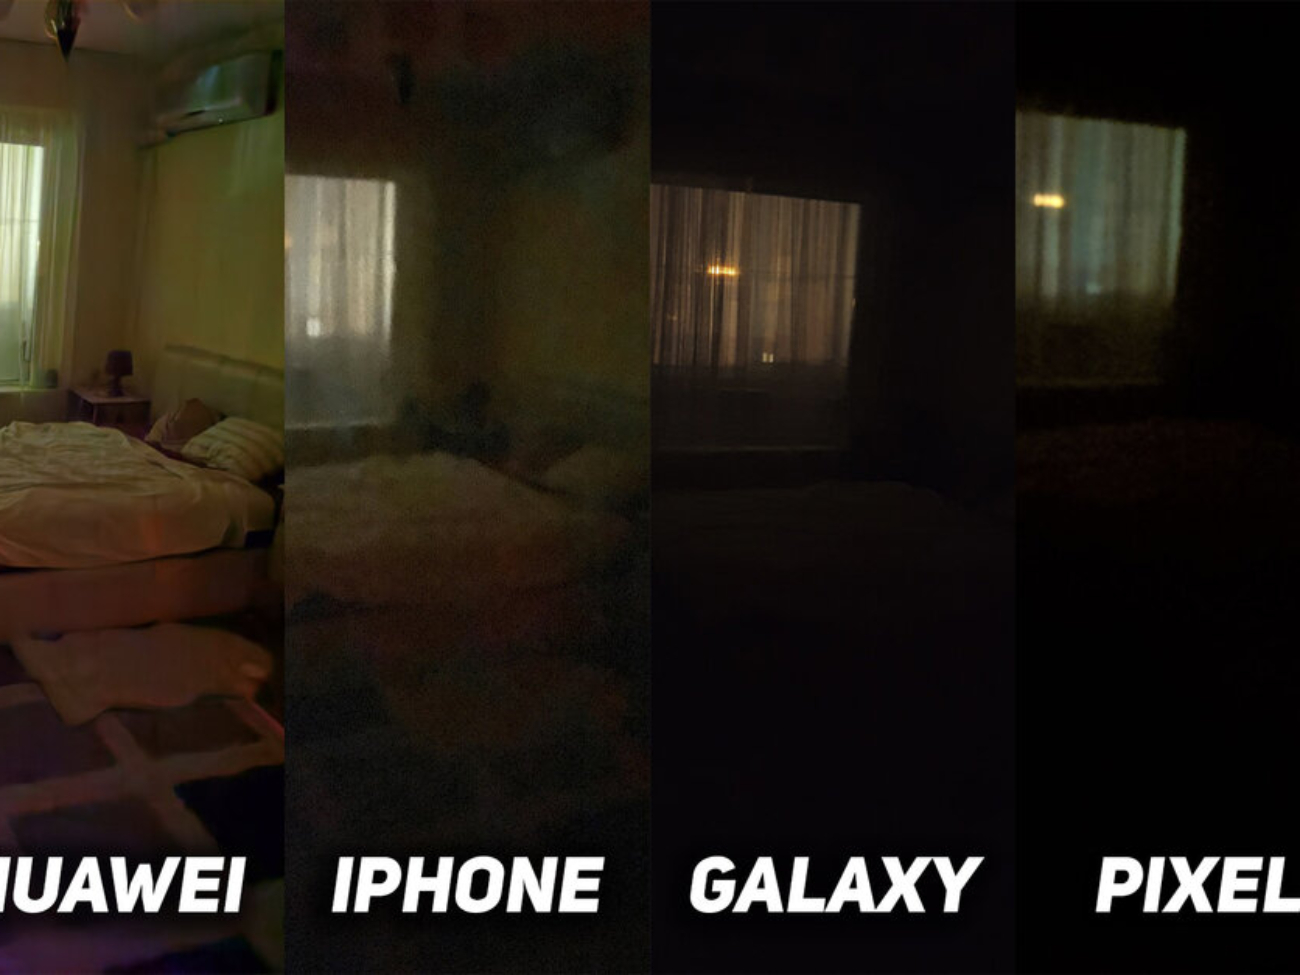 Huawei-Mate-30-Pro-vs-iPhone-11-Pro-vs-Galaxy-Note-10-vs-Pixel-3-EXTREME-Low-Light-Camera-Test